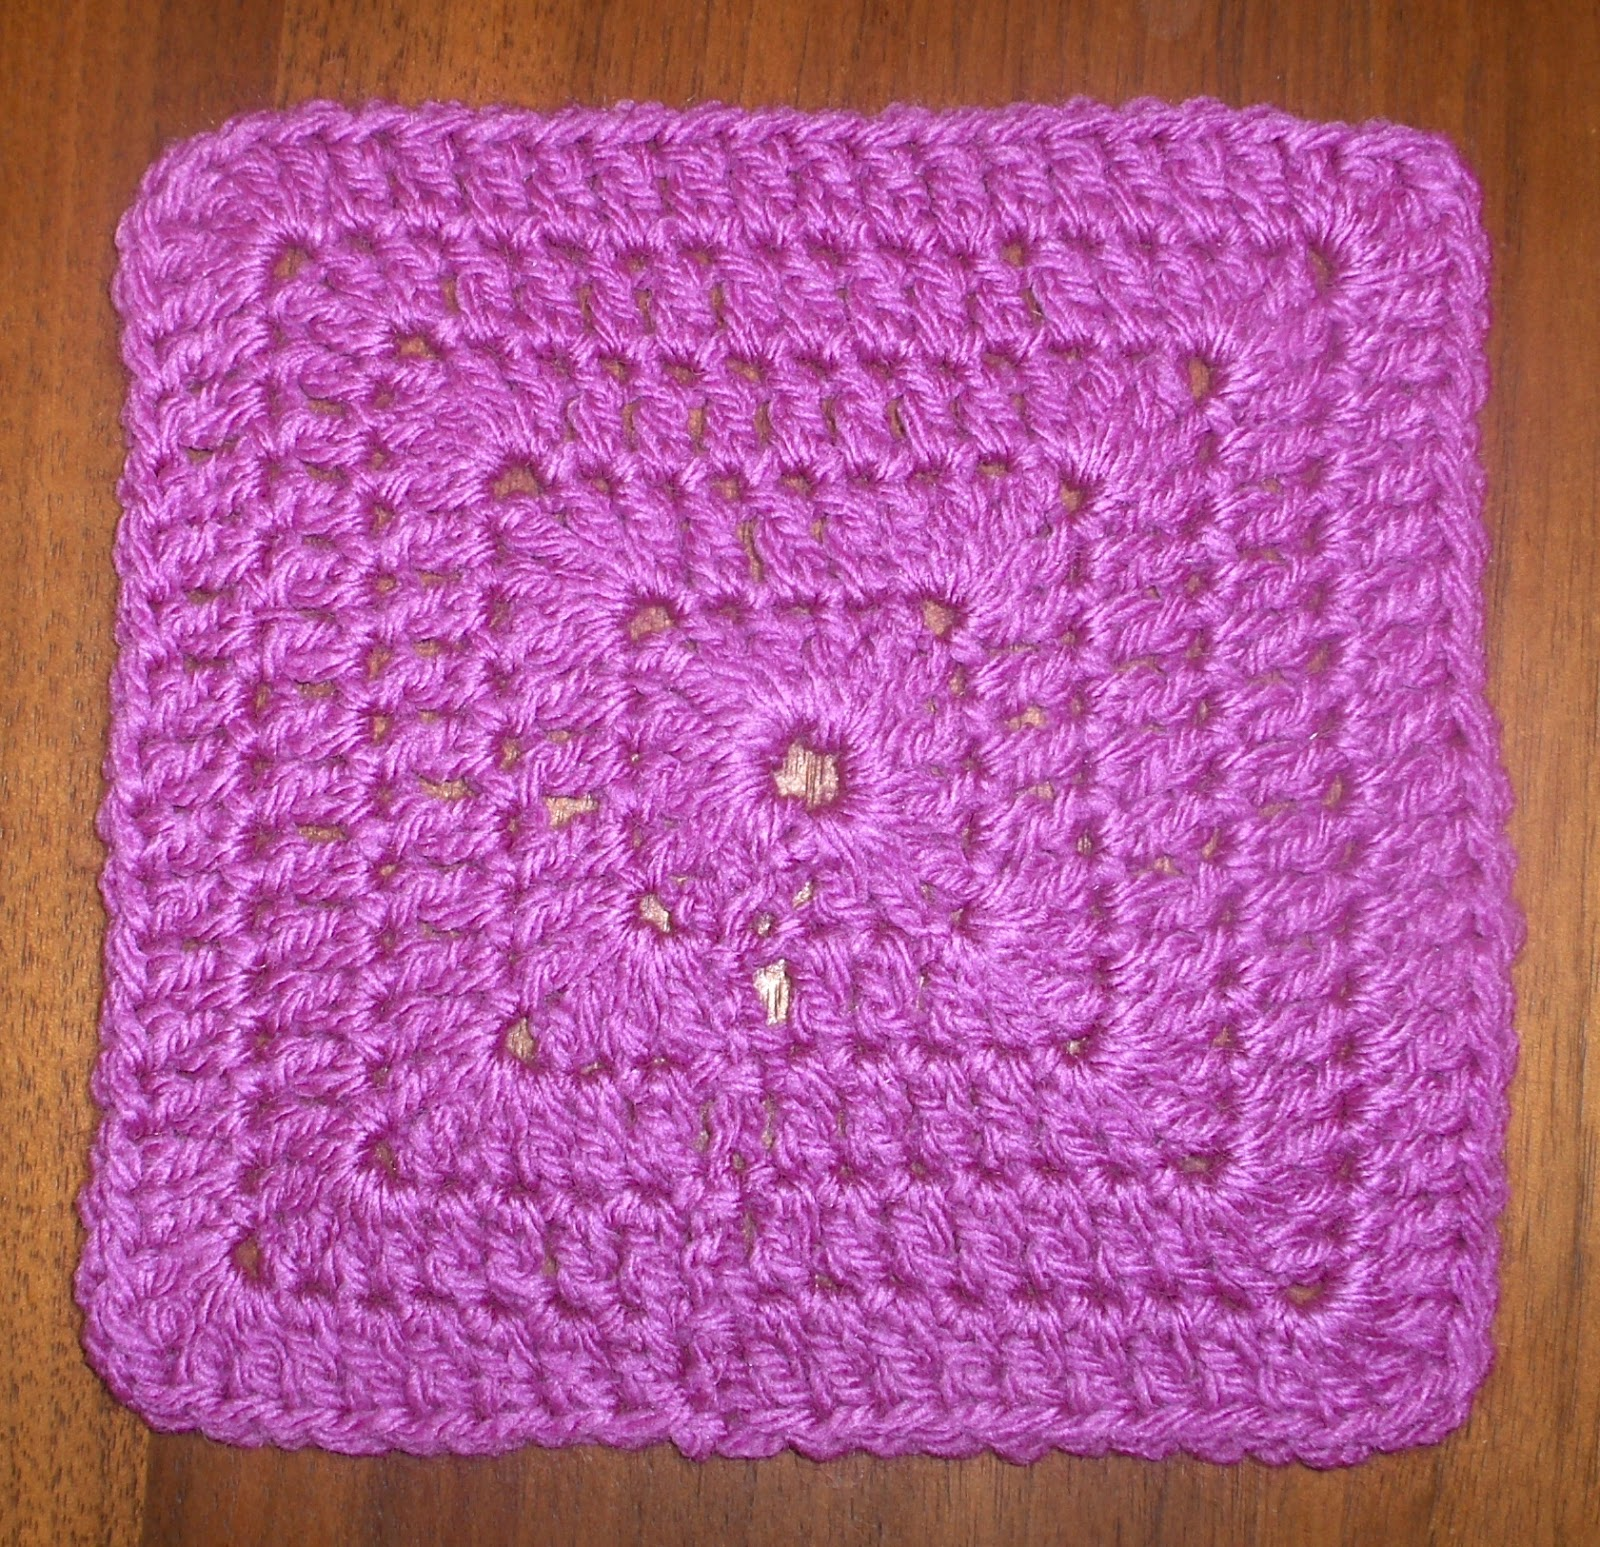 Basic Crochet Pattern For Granny Square : Das Crochet Connection: GSC (Granny Square Challenge) Update